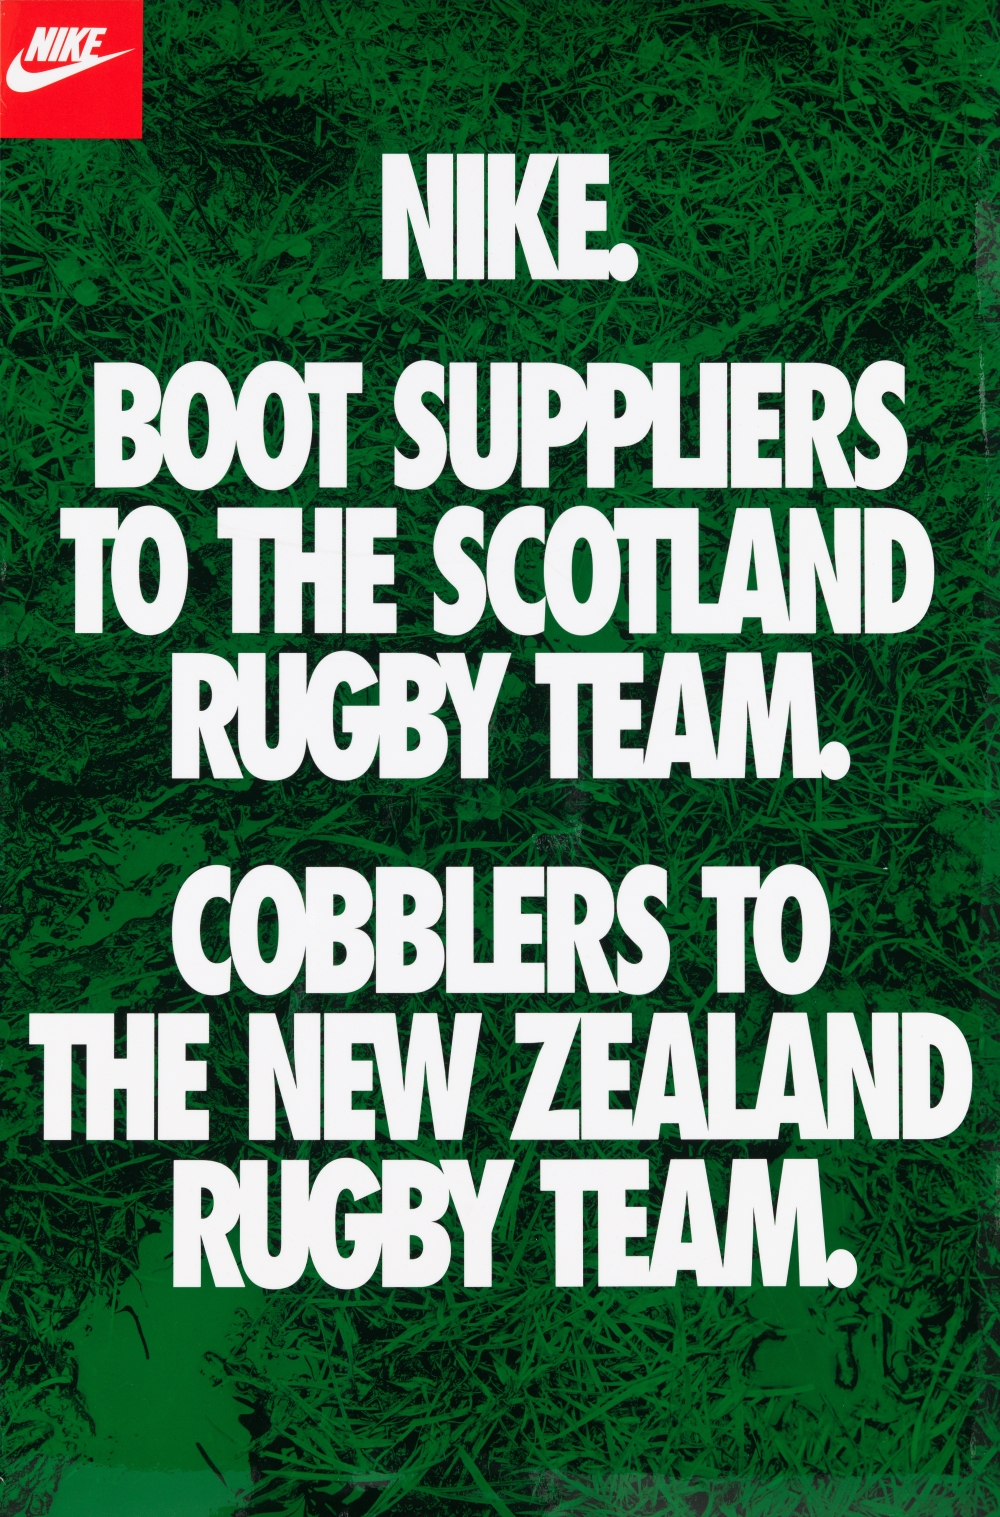 NIKE_Poster_Cobblers